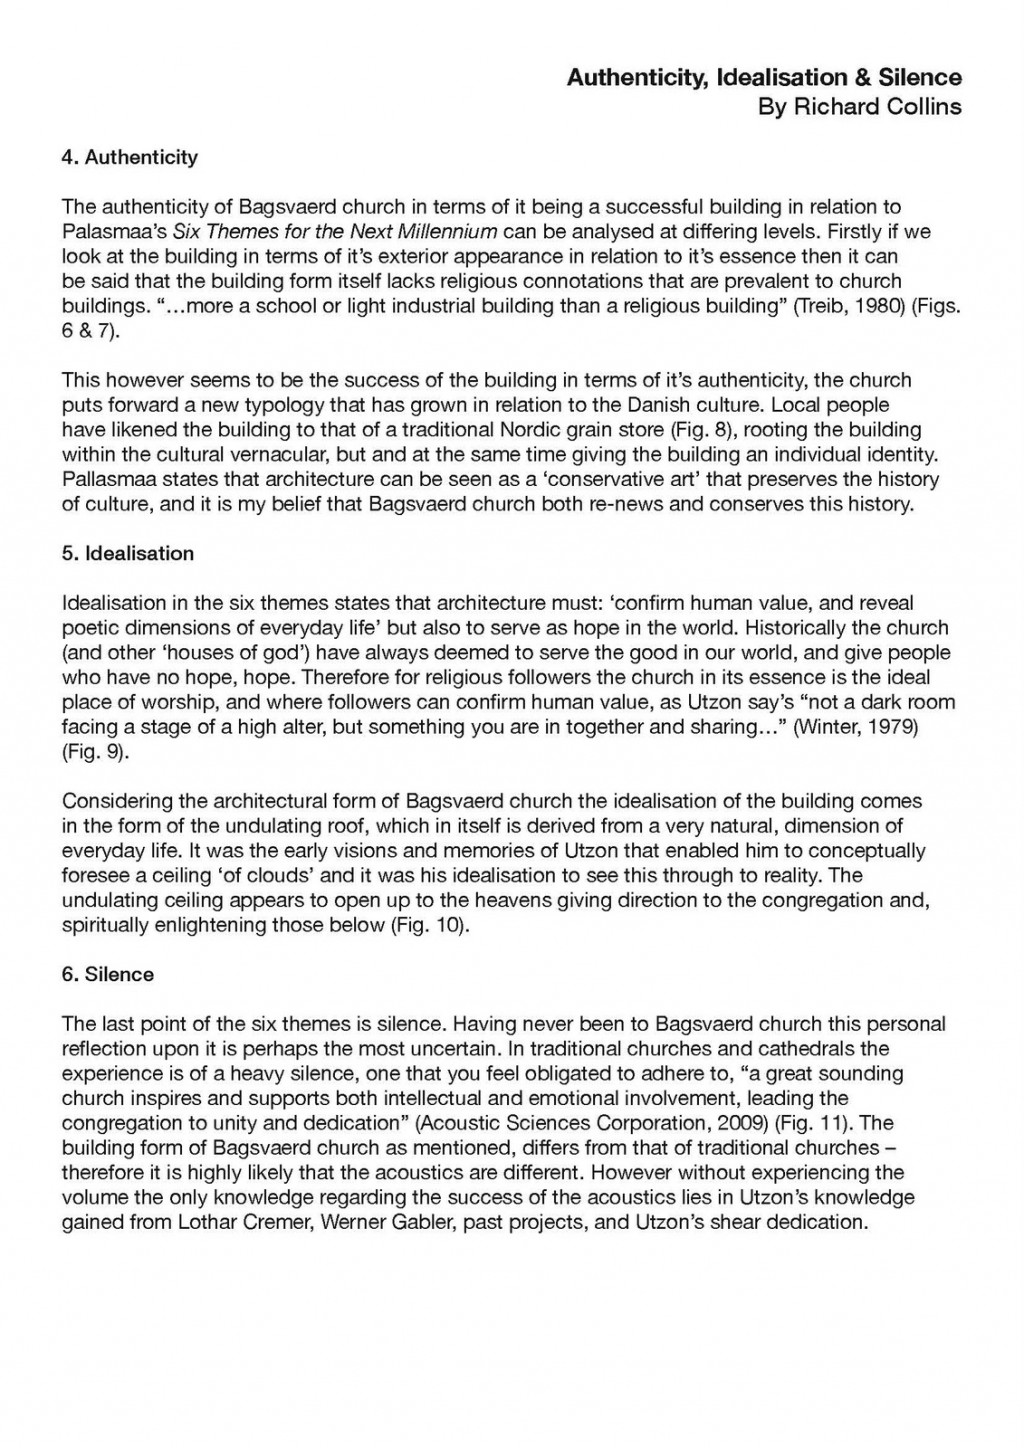 005 Exemplification Essay Example Striking About Technology Outline Examples Free Large